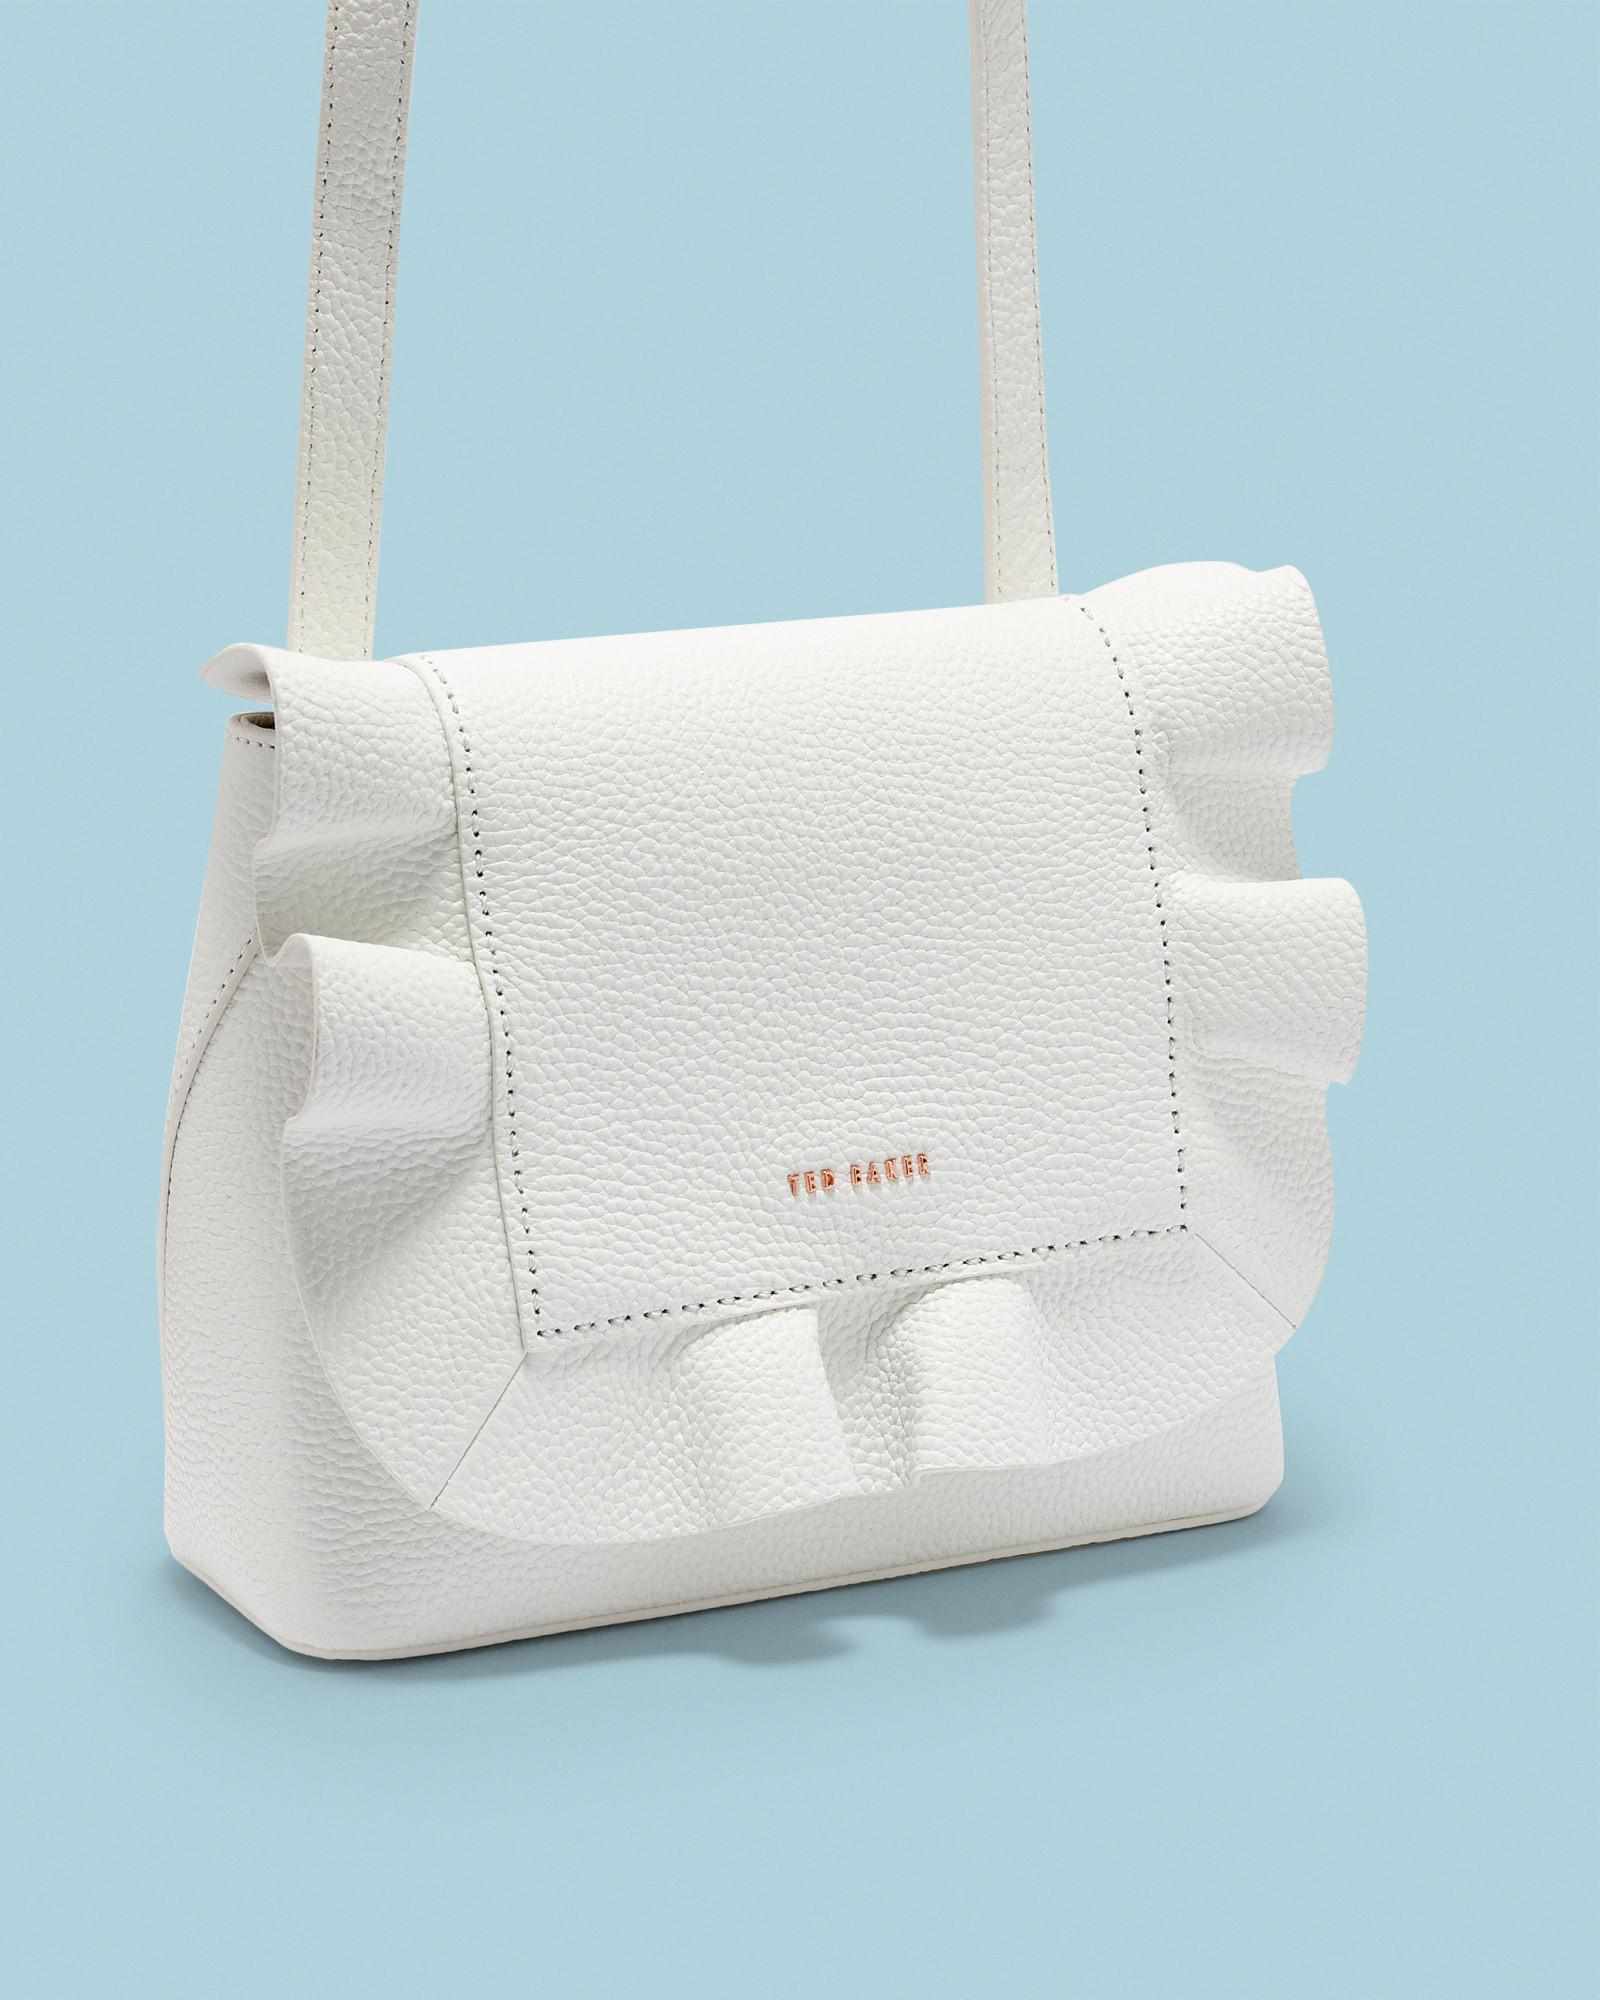 e19ecb7ce Ted Baker Leather Ruffle Multiway Backpack in White - Lyst